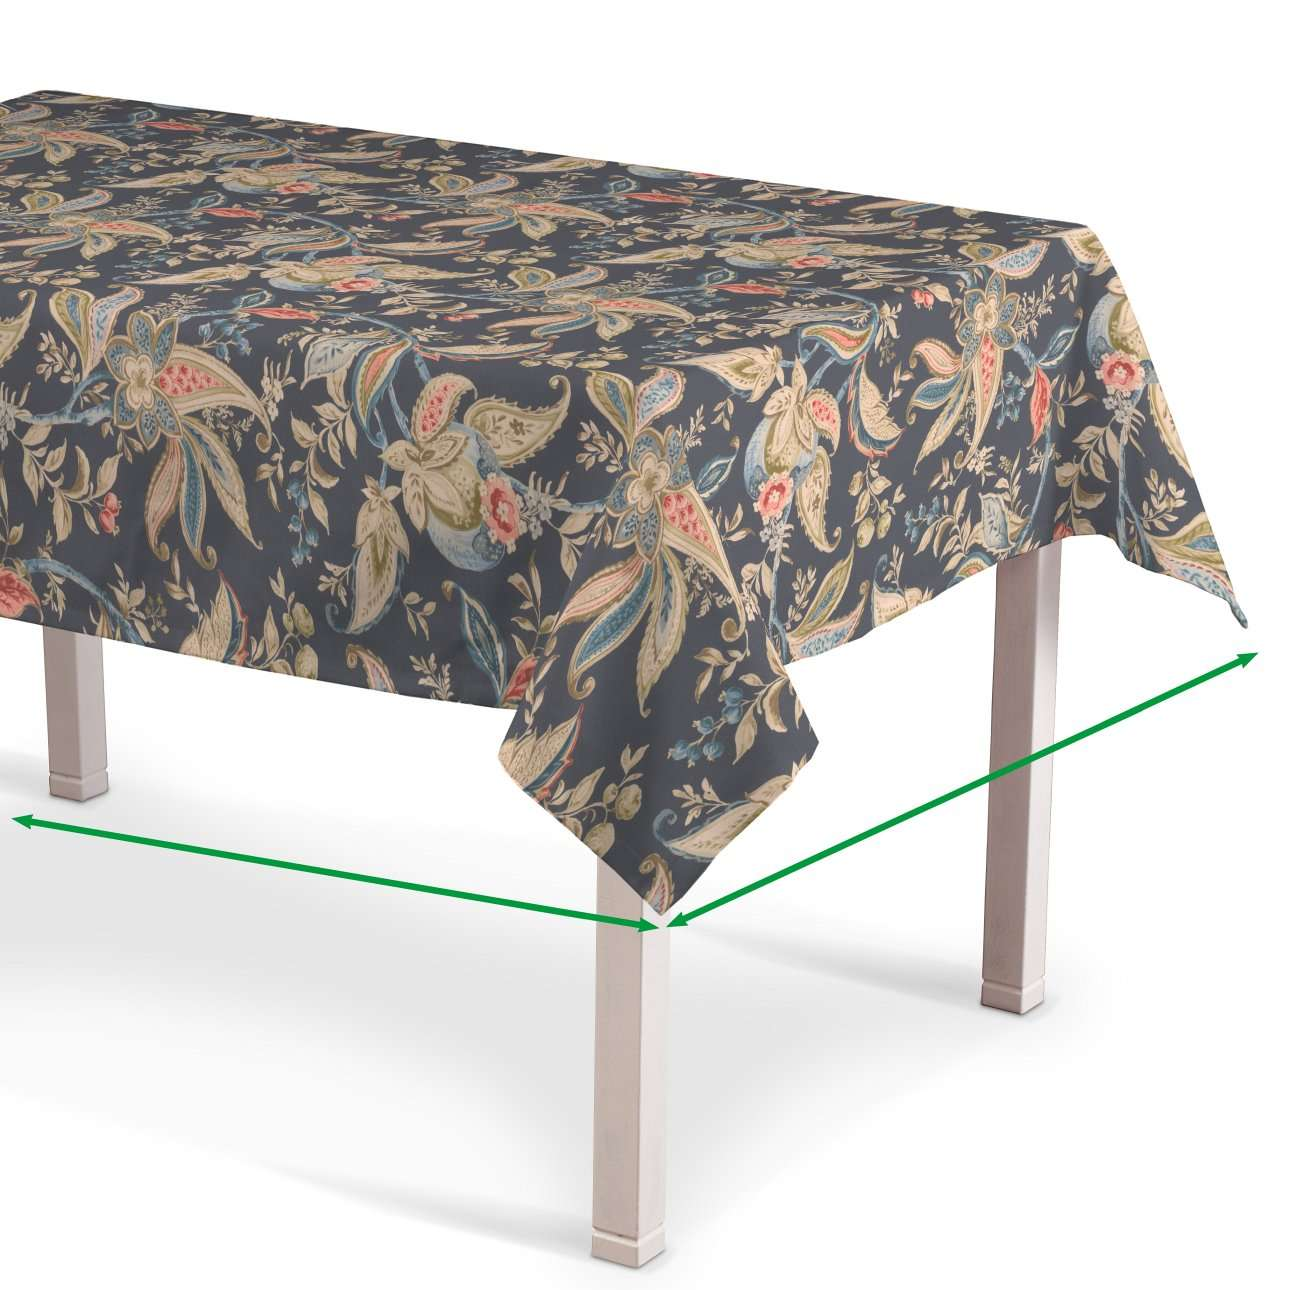 Rectangular tablecloth in collection Gardenia, fabric: 142-19